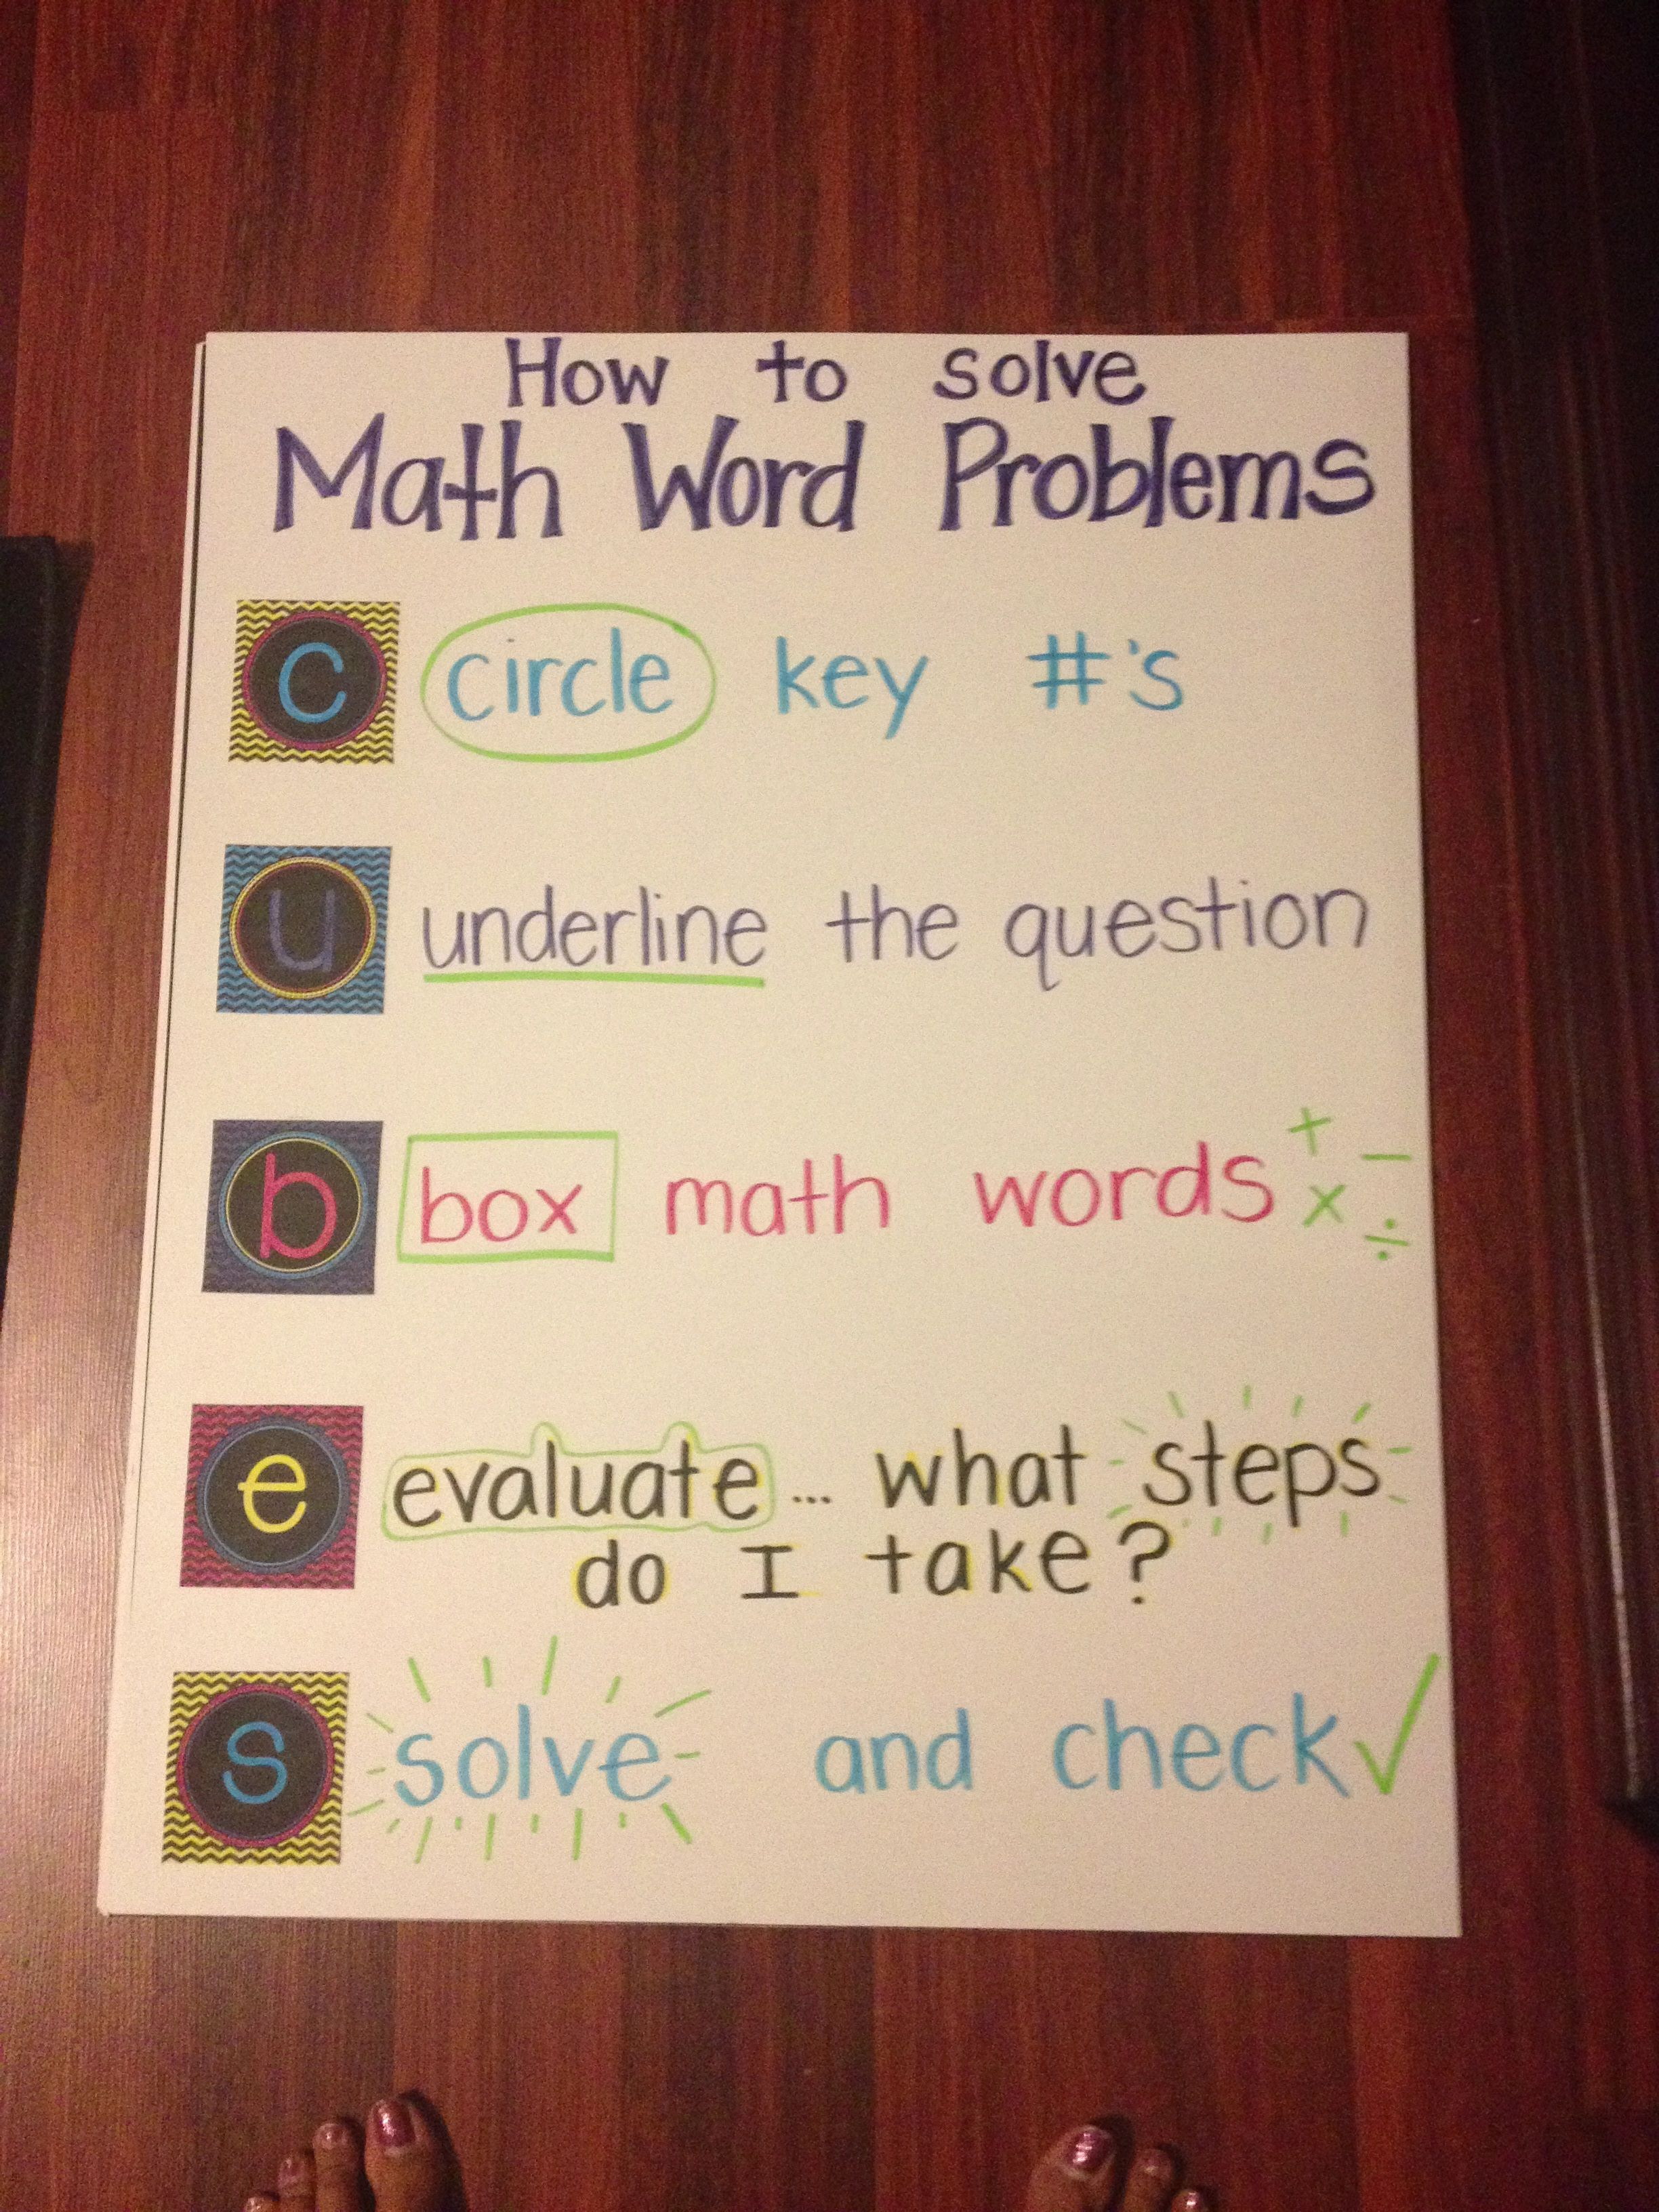 How to solve word problems anchor chart anchor charts pinterest how to solve word problems anchor chart ccuart Gallery